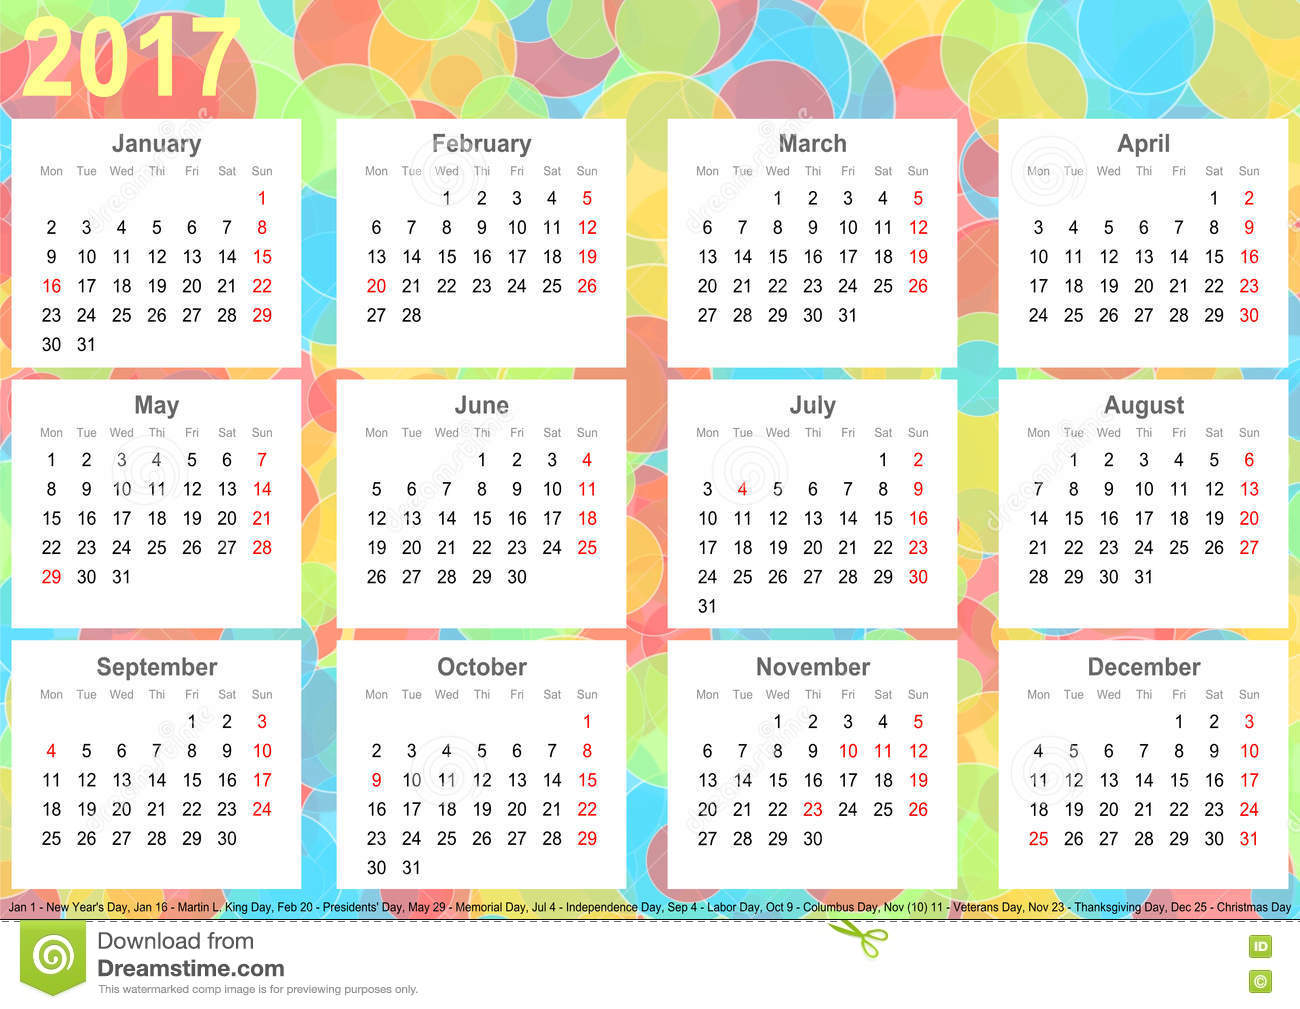 Monthly Calendar Usa : Calendar background colorful circles usa stock